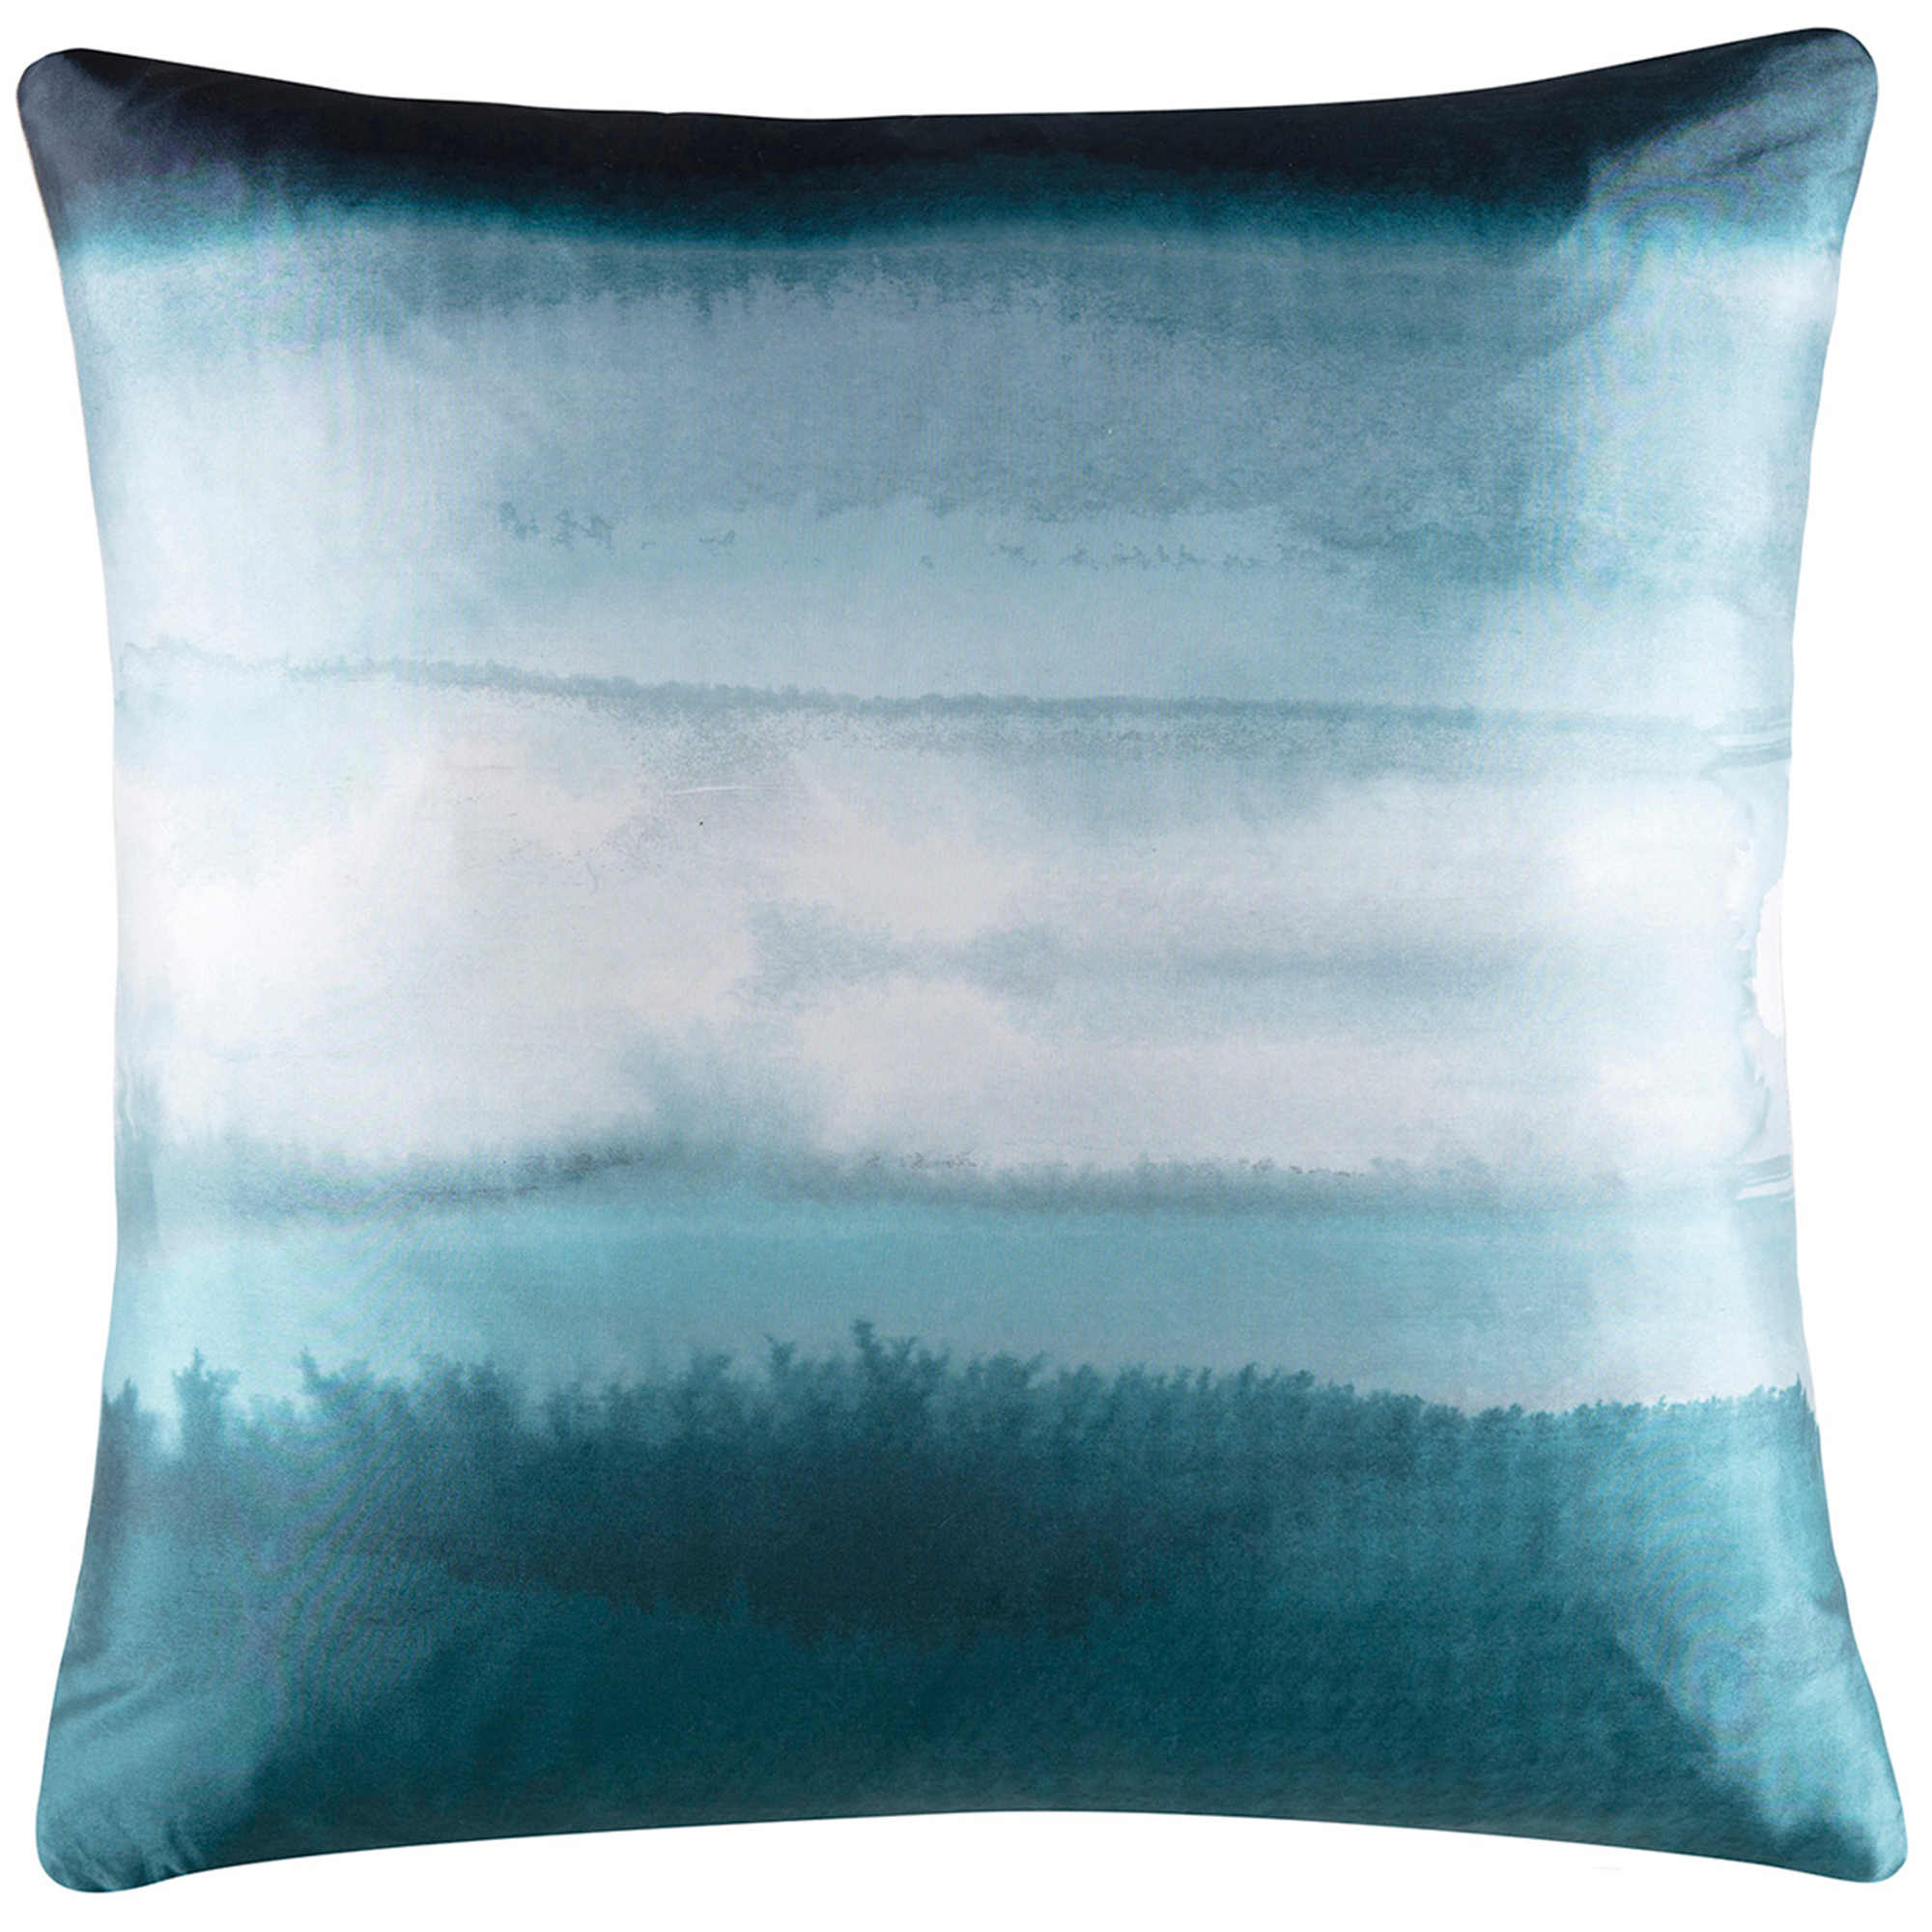 SKU KASK2238 Blue Haze Onda Cushion Is Also Sometimes Listed Under The Following Manufacturer Numbers 9313760494677